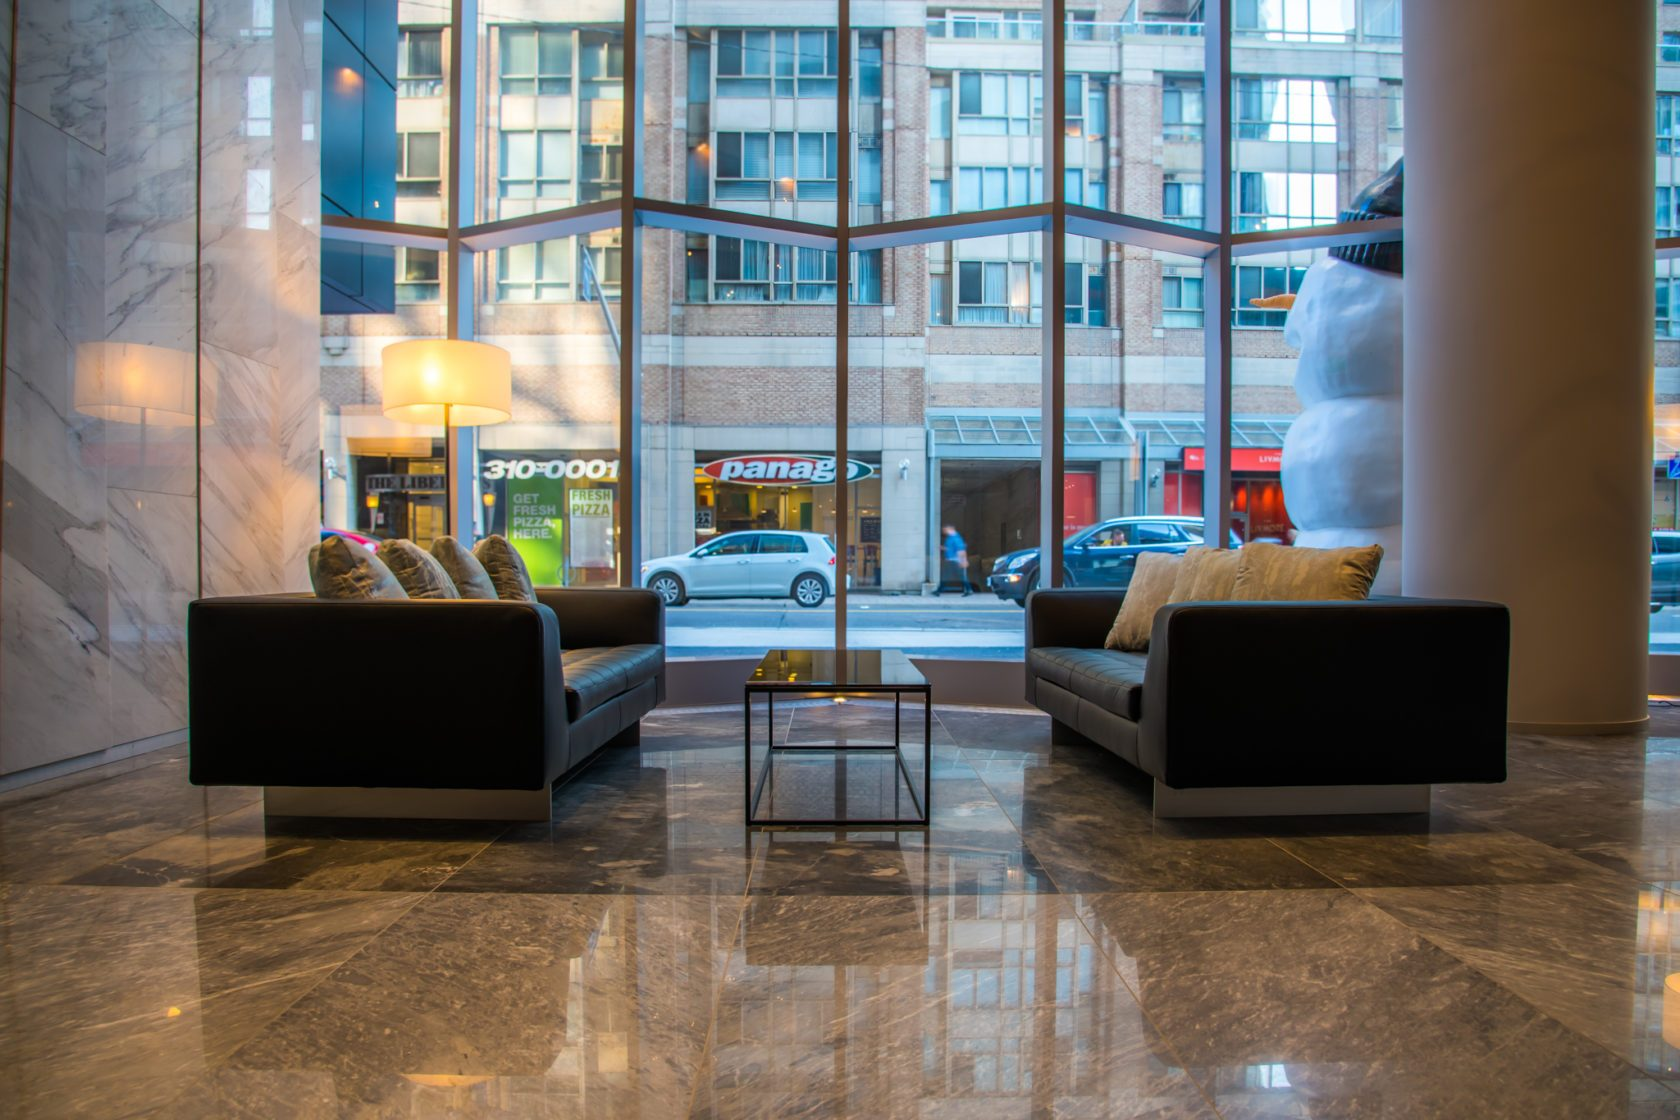 Beautiful lobby with comfy seating